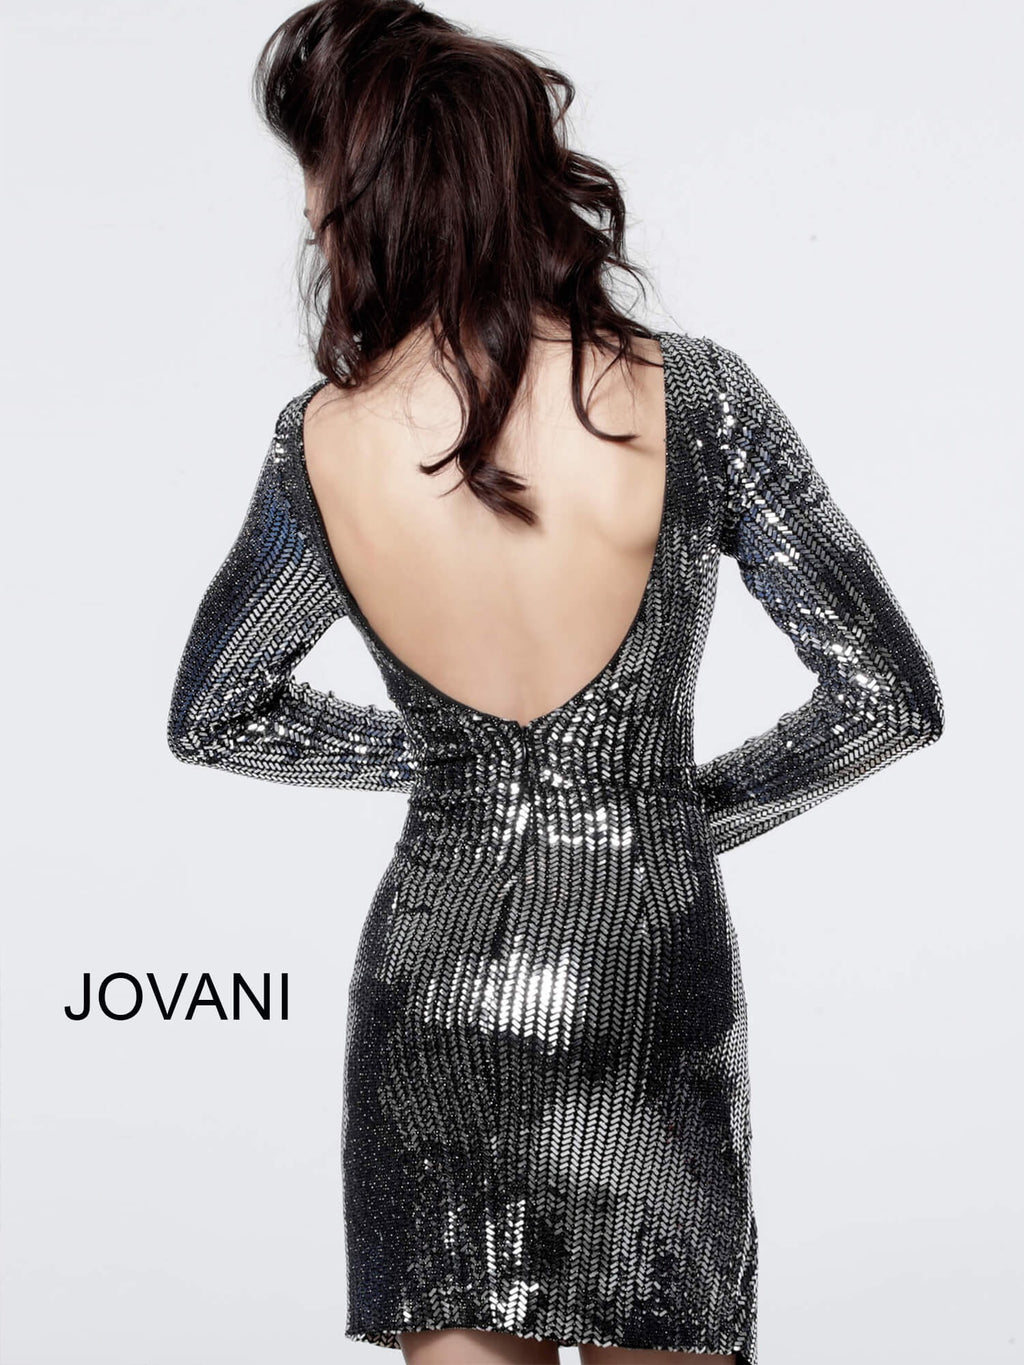 JOVANI 3478 Long Sleeve Short Dress - CYC Boutique